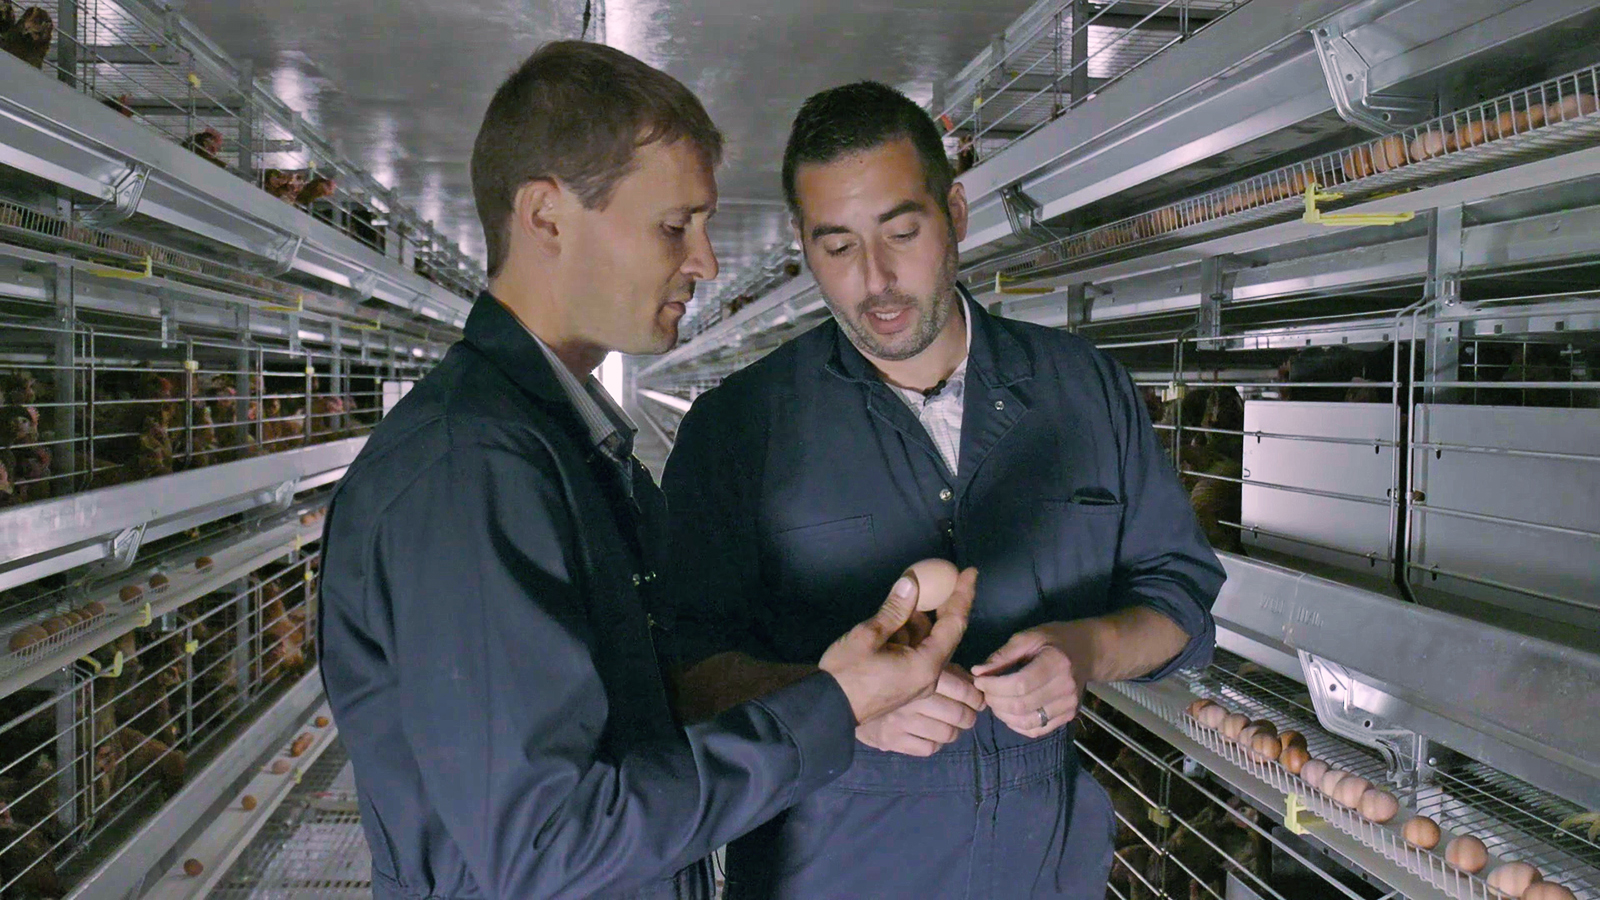 Nathan Pelletier, Egg Farmers of Canada